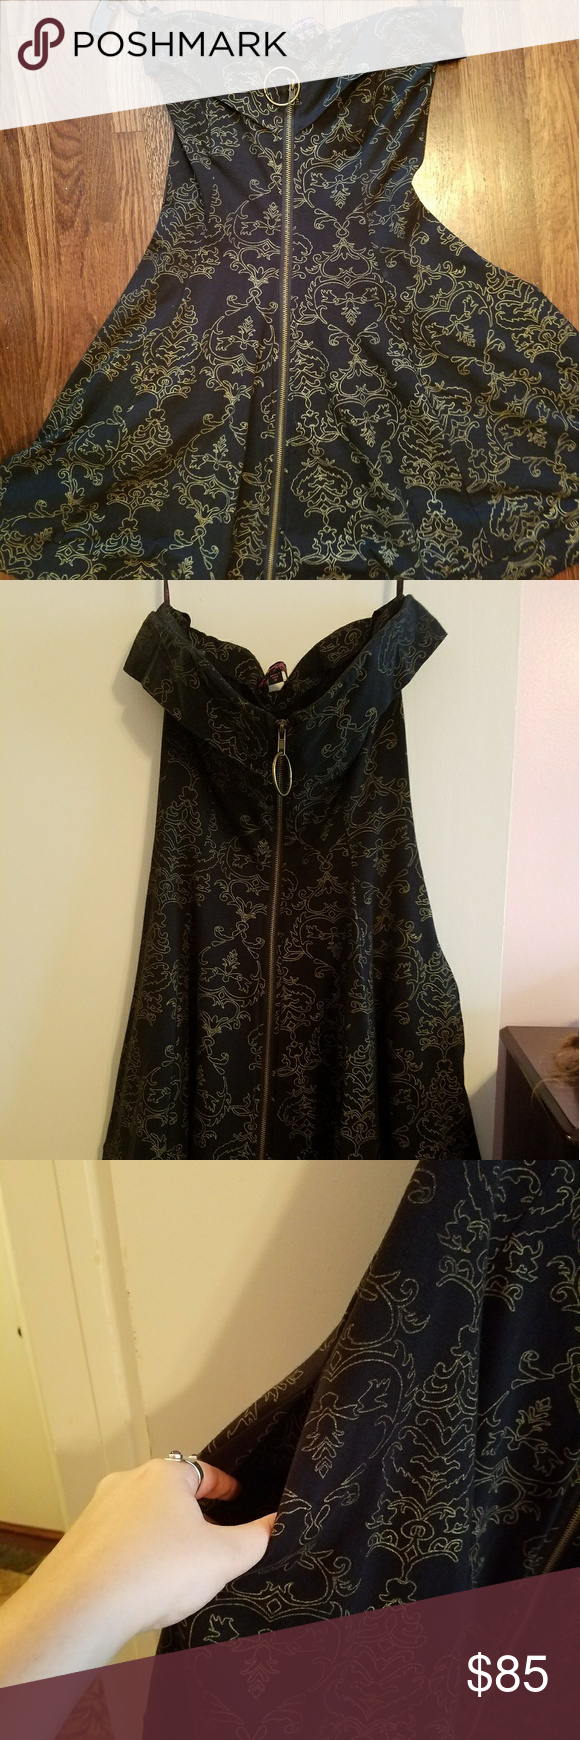 Betsey Johnson Strapless Fit and Flare Classic Betsey fit and flare! Black and gold filigree design, front zipper and POCKETS!  Stretchy and flattering very fun dress! Betsey Johnson Dresses